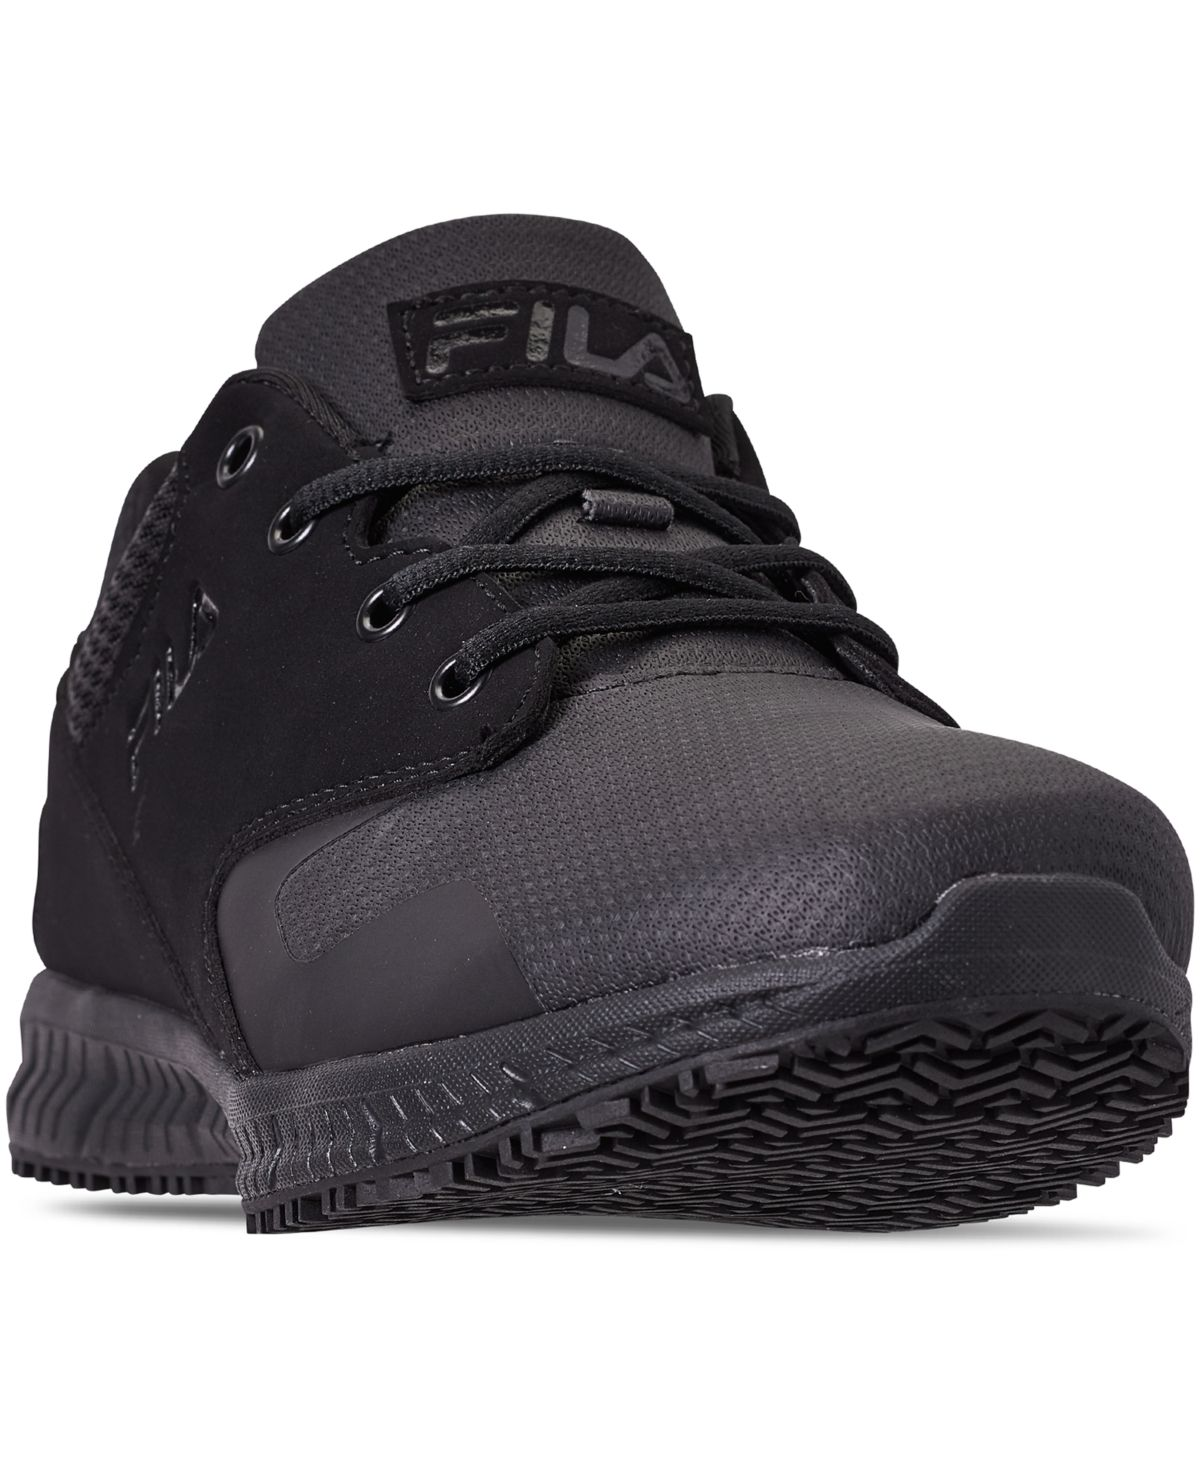 Fila shoes and Reebok shoes Comparison « Online Shopping